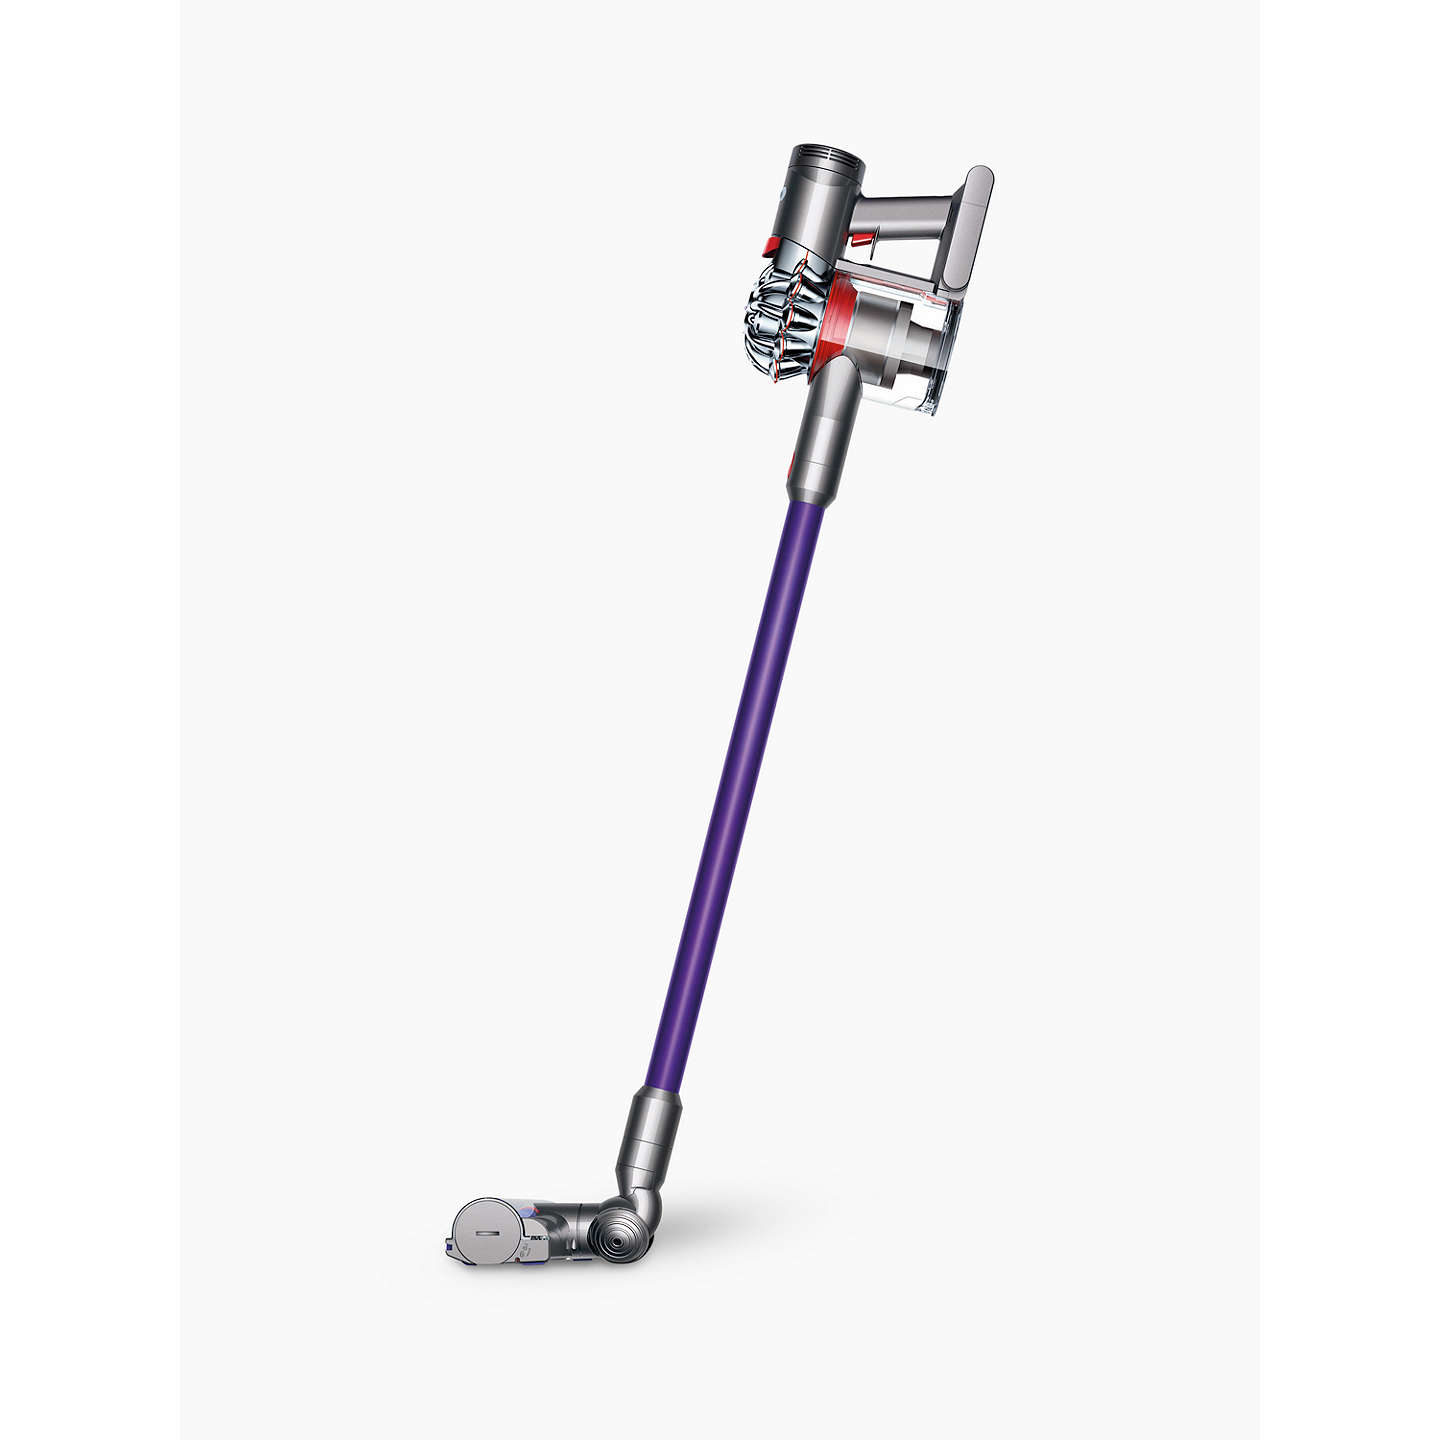 BuyDyson V7 Animal Cordless Vacuum Cleaner Online At Johnlewis